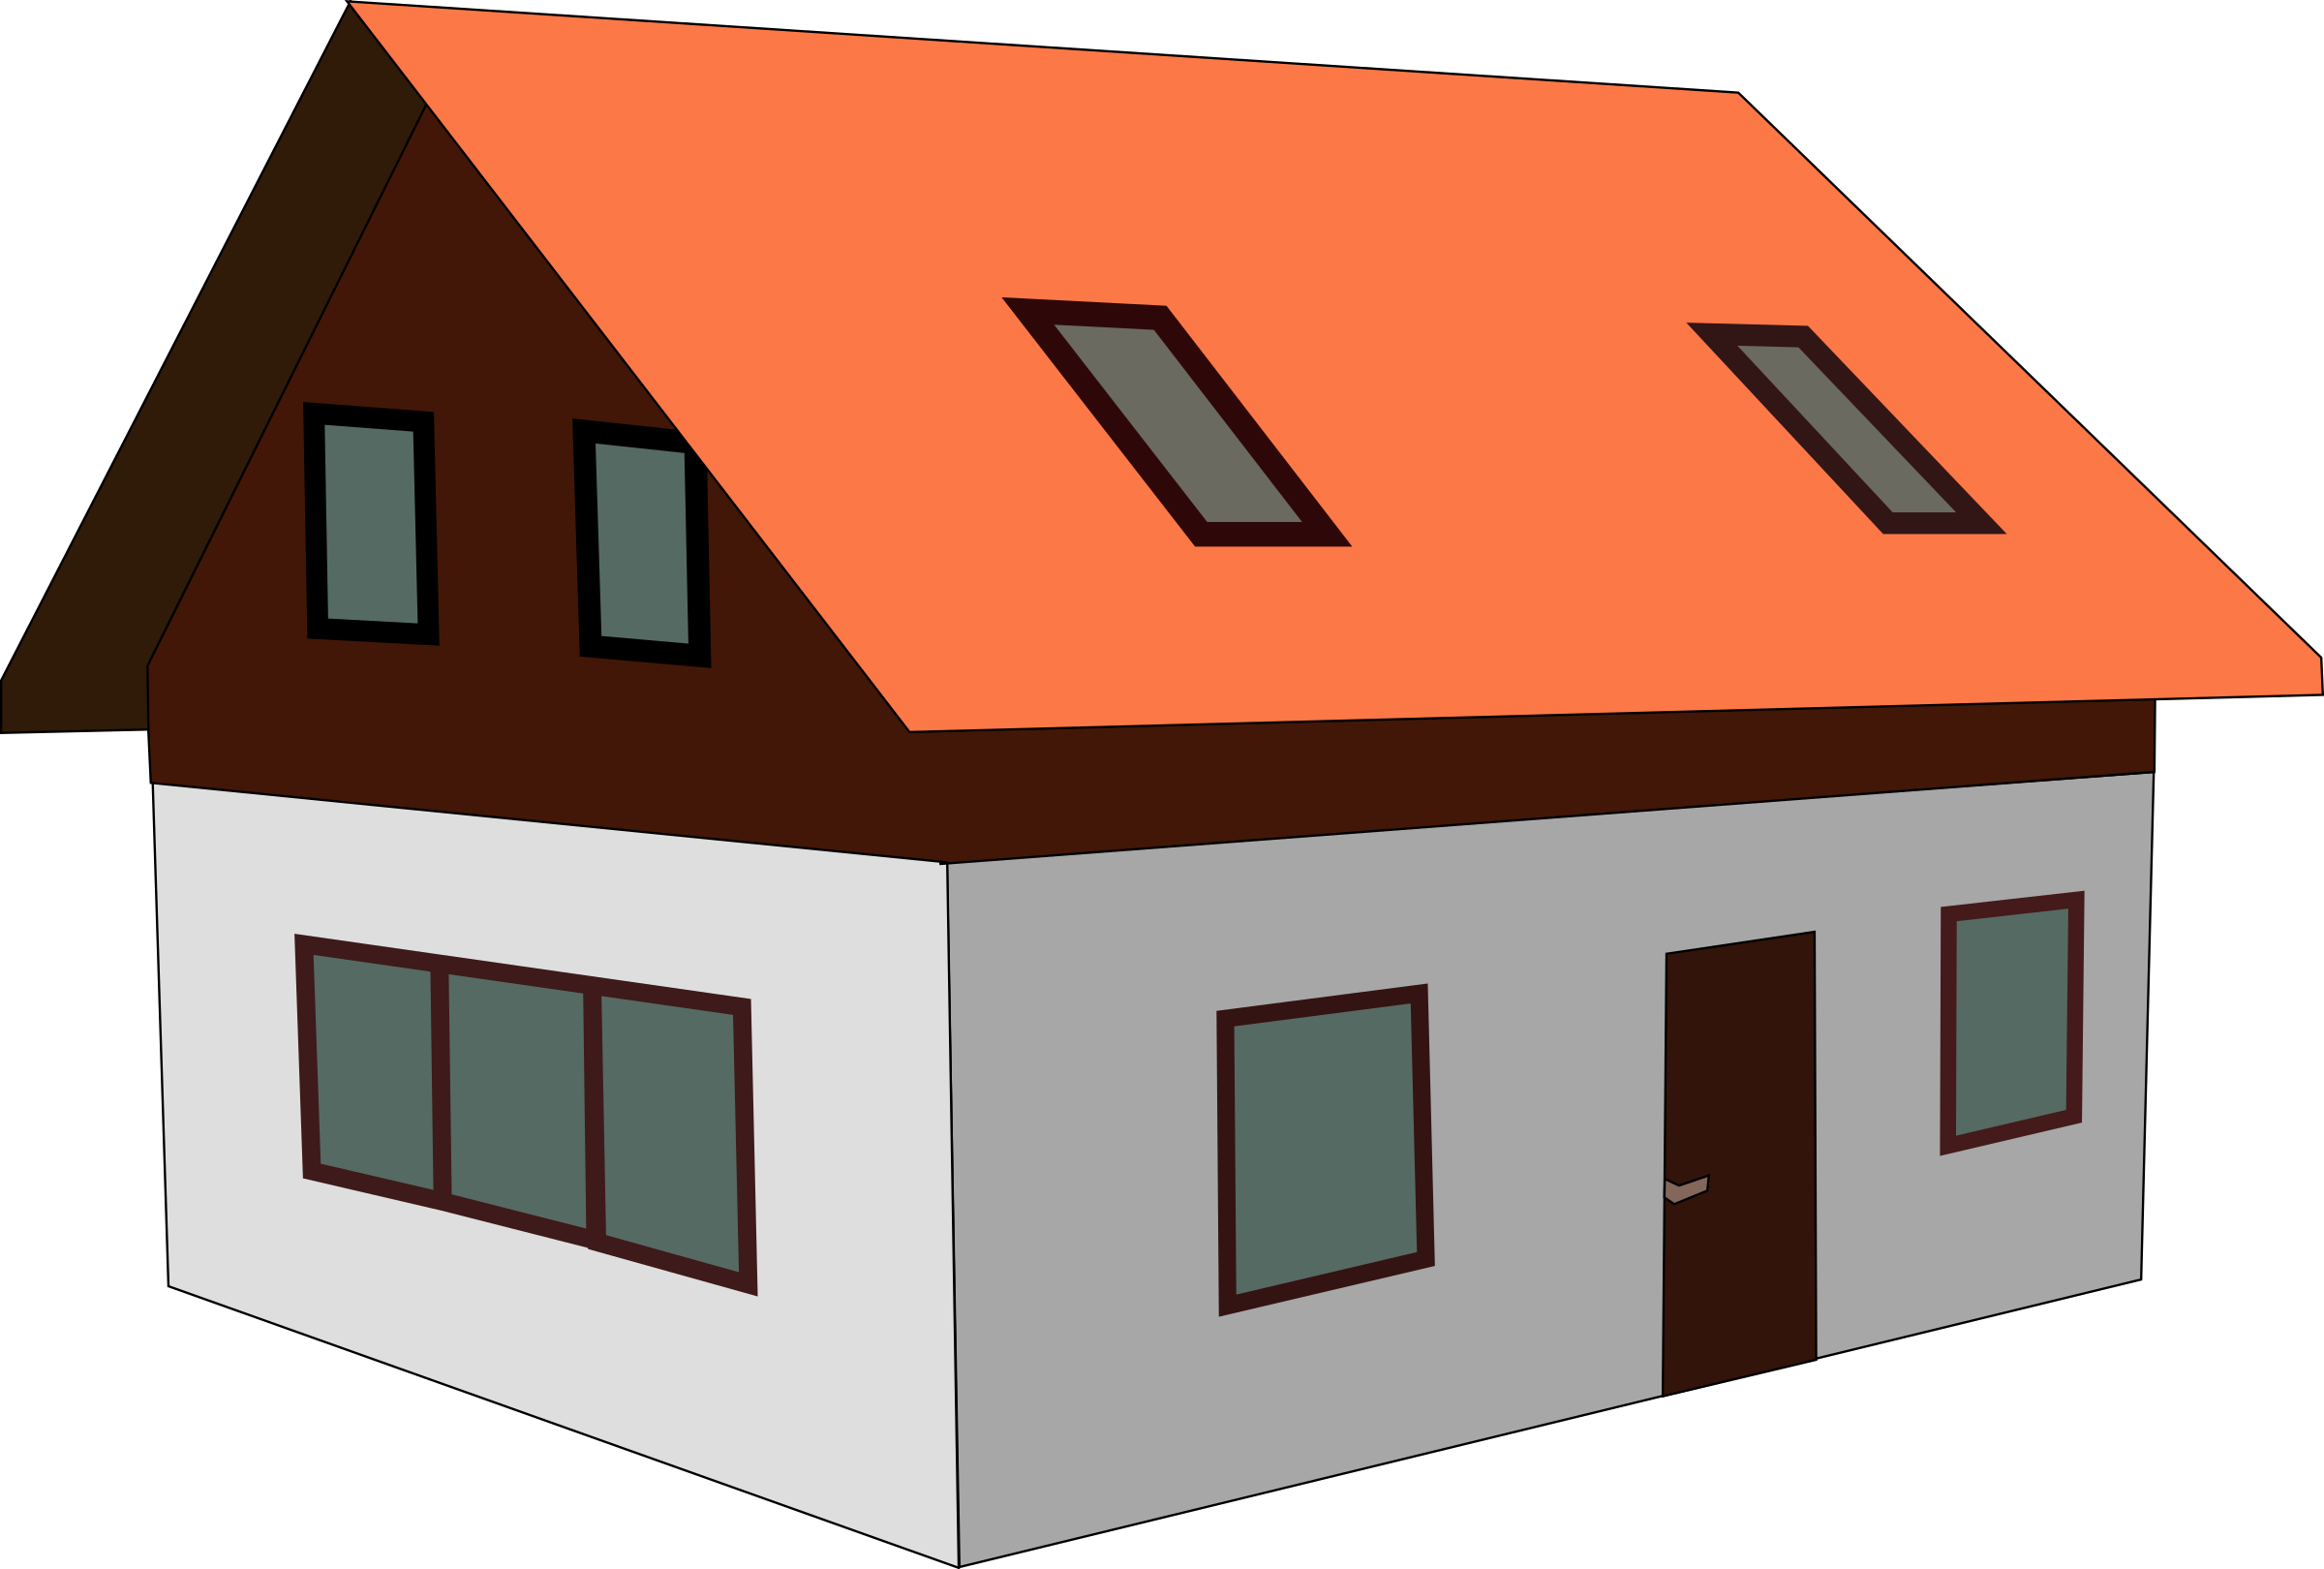 Free Home House Cliparts, Download Free Clip Art, Free Clip Art on Clipart  Library